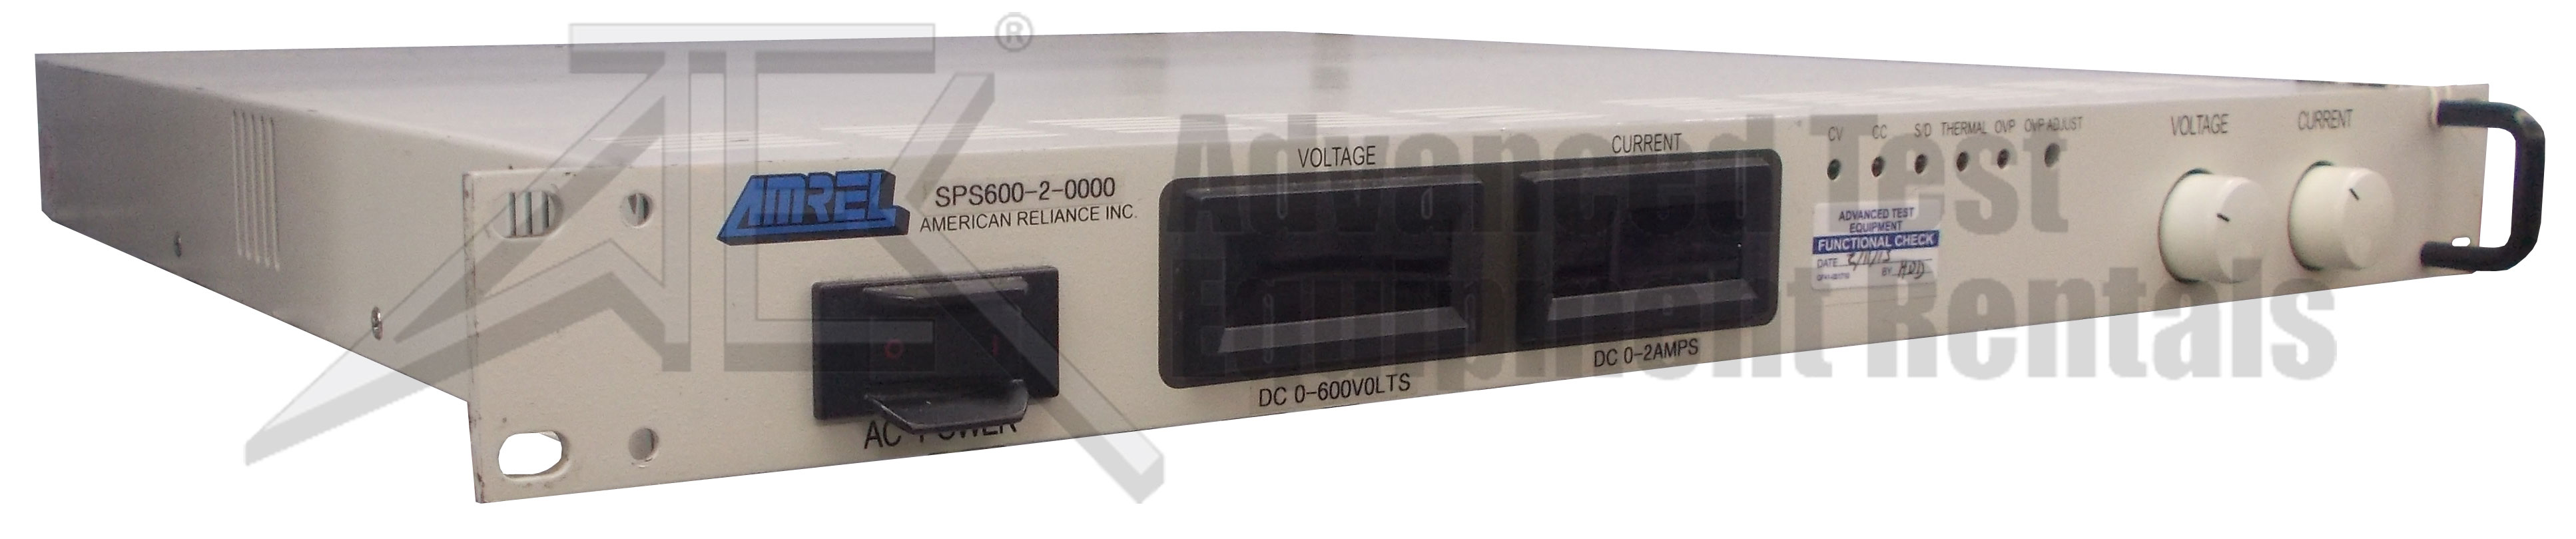 Amrel SPS600 DC Switching Power Supply 600V, 2A